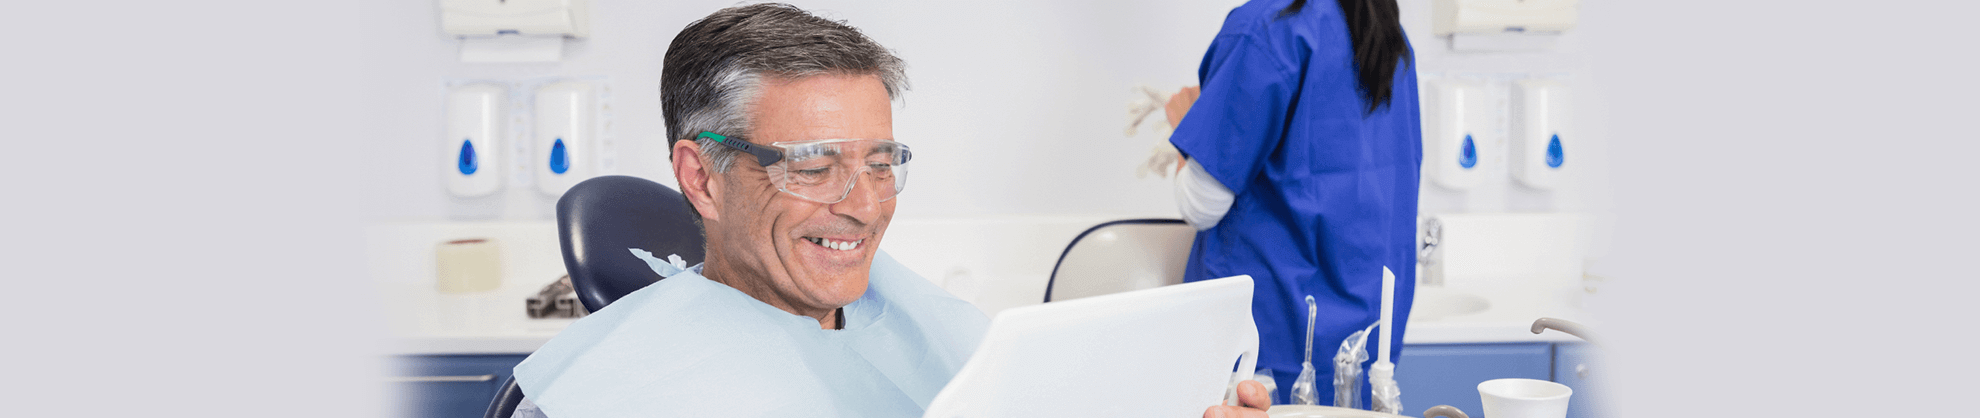 Affordable Dental Implants Wilton Manors FL